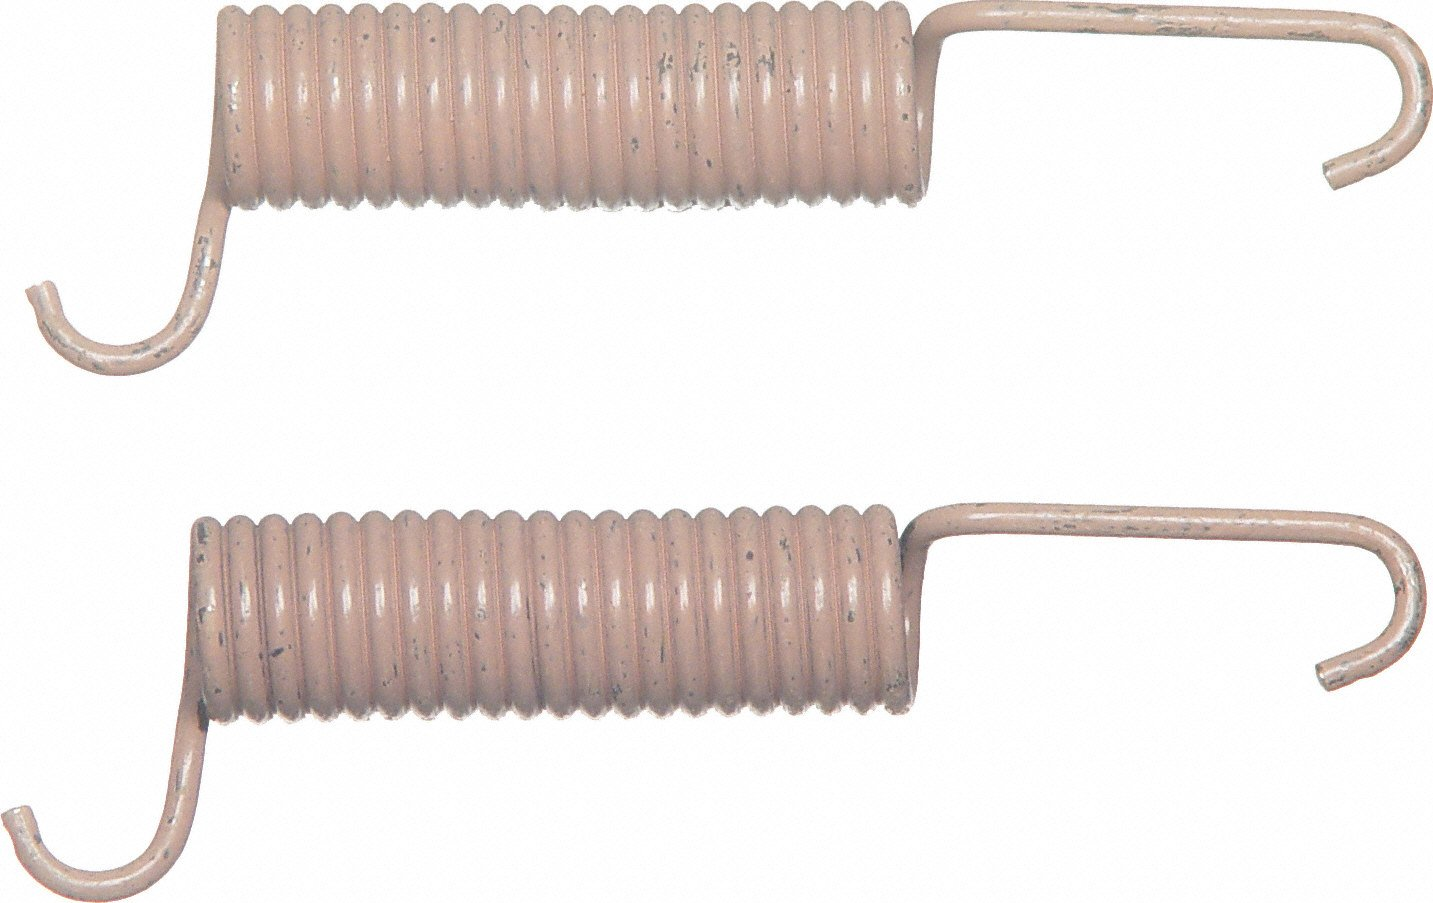 Wagner H444 Drum Brake Adjusting Spring Kit Rear